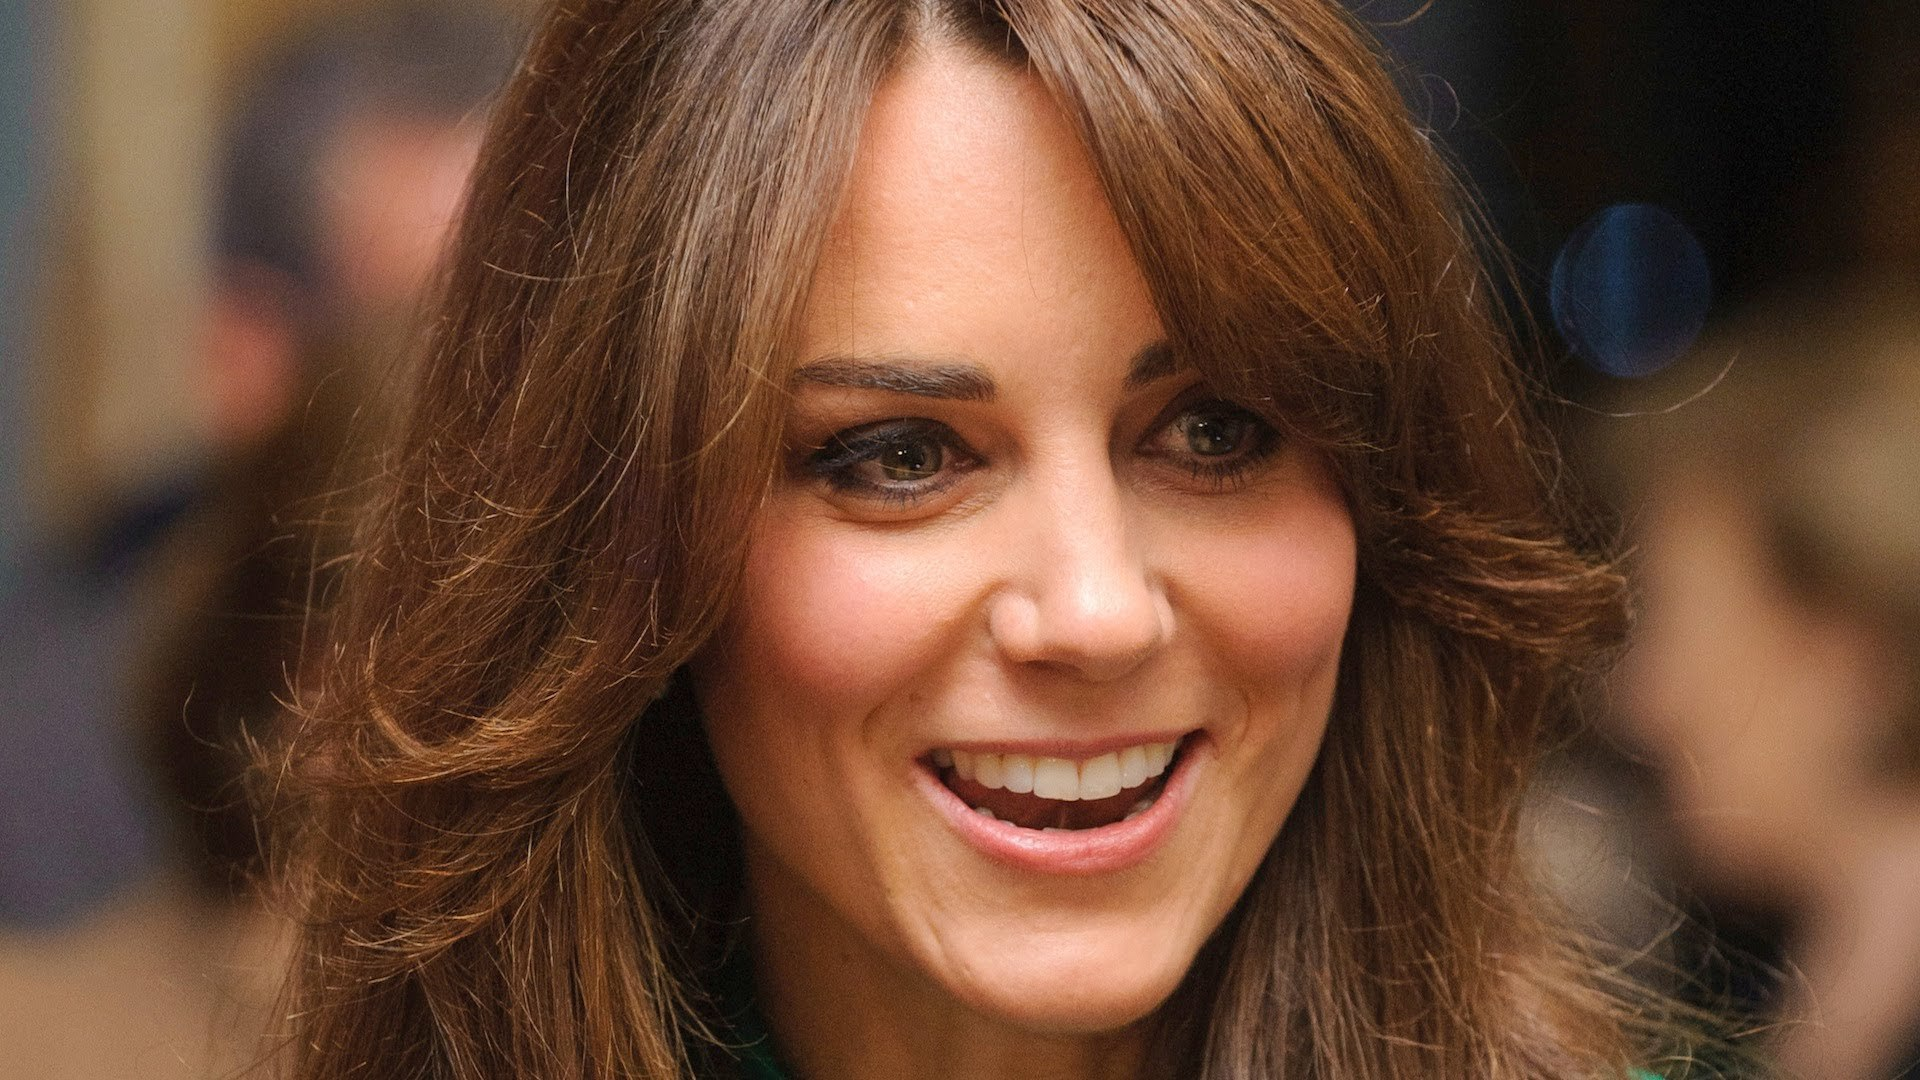 Kate Middleton Wallpapers Images Photos Pictures Backgrounds 1920x1080